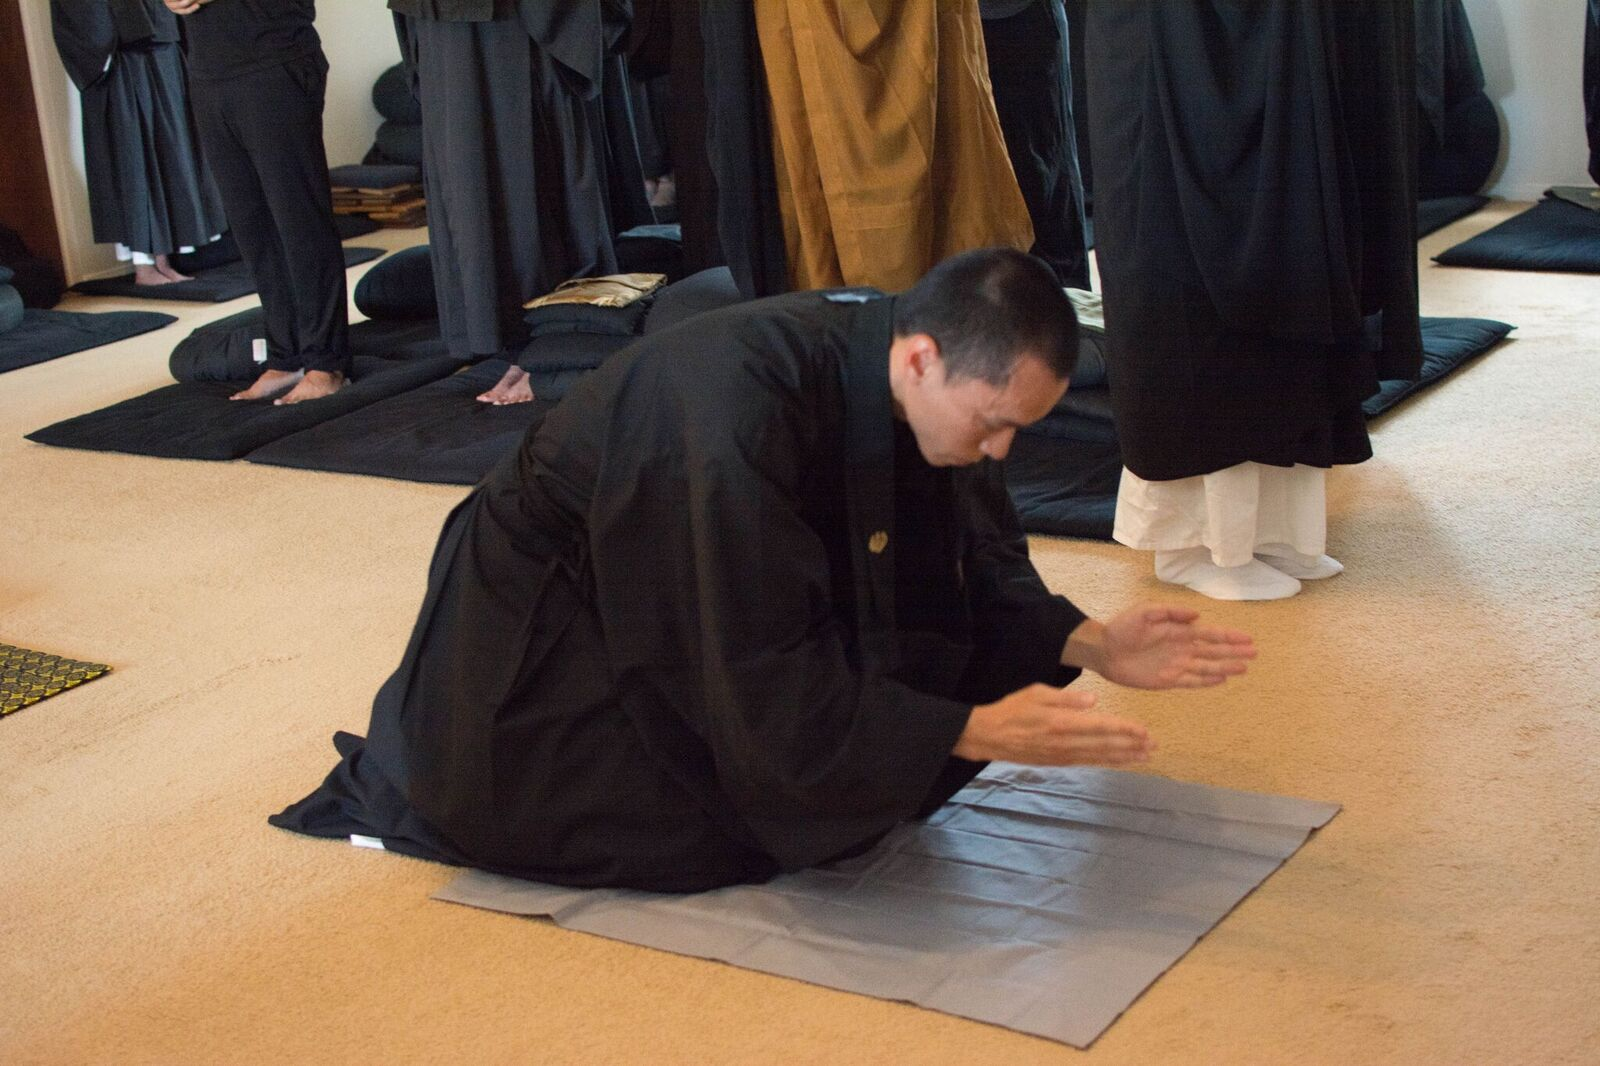 Juzen bowing2